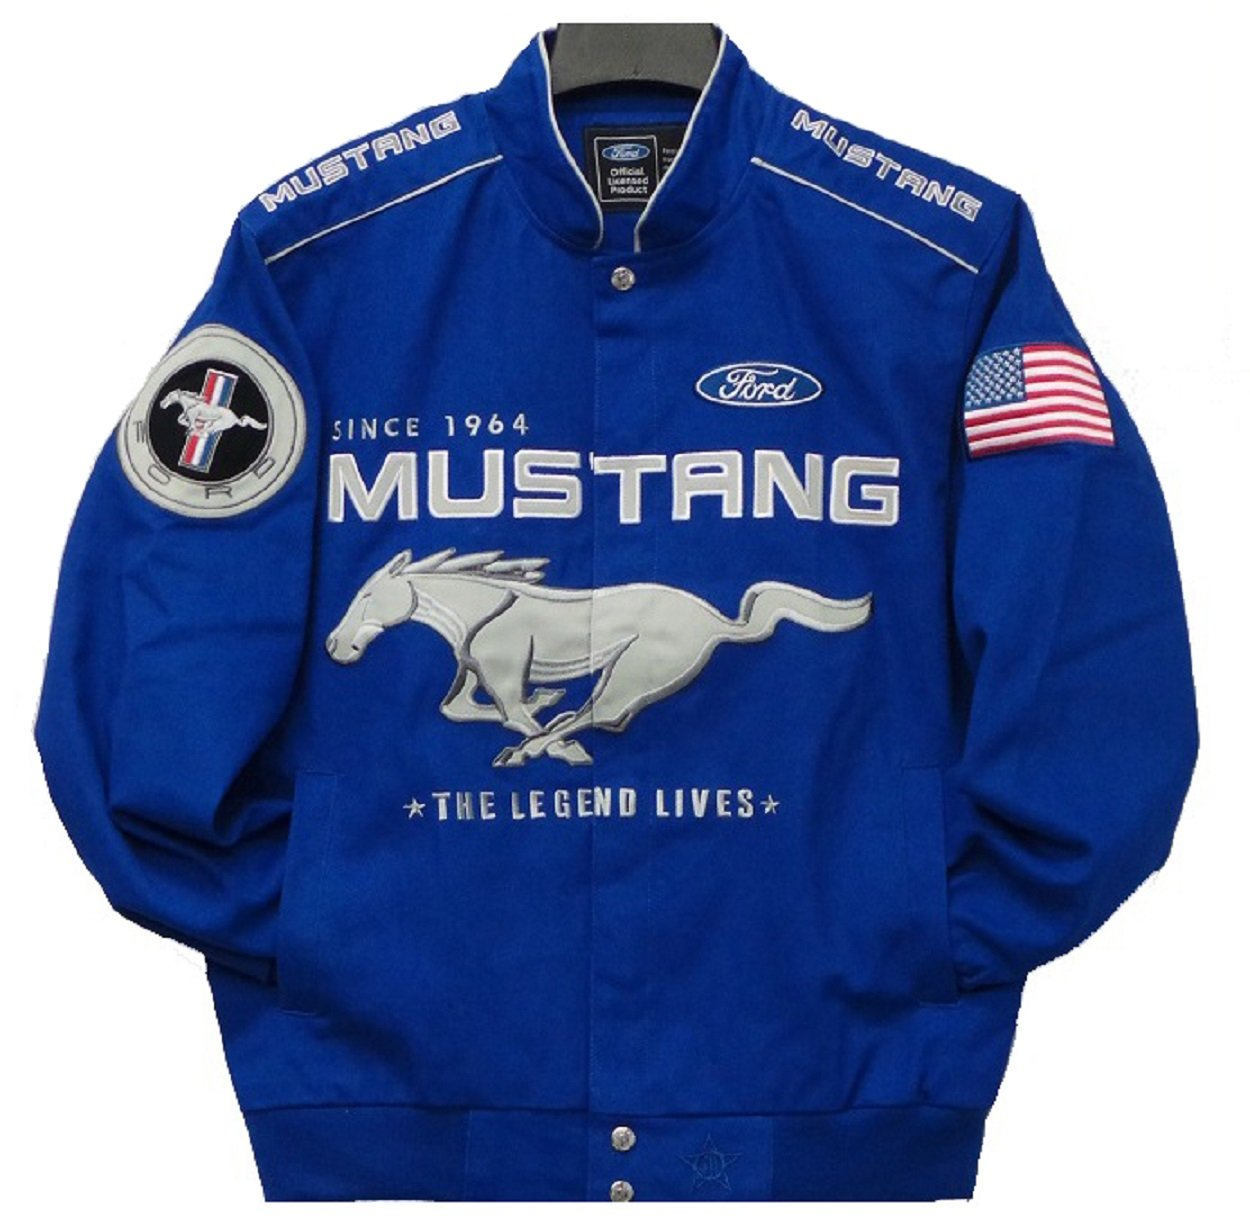 2017 Mustang Racing Cotton Jacket JH Design Size Small